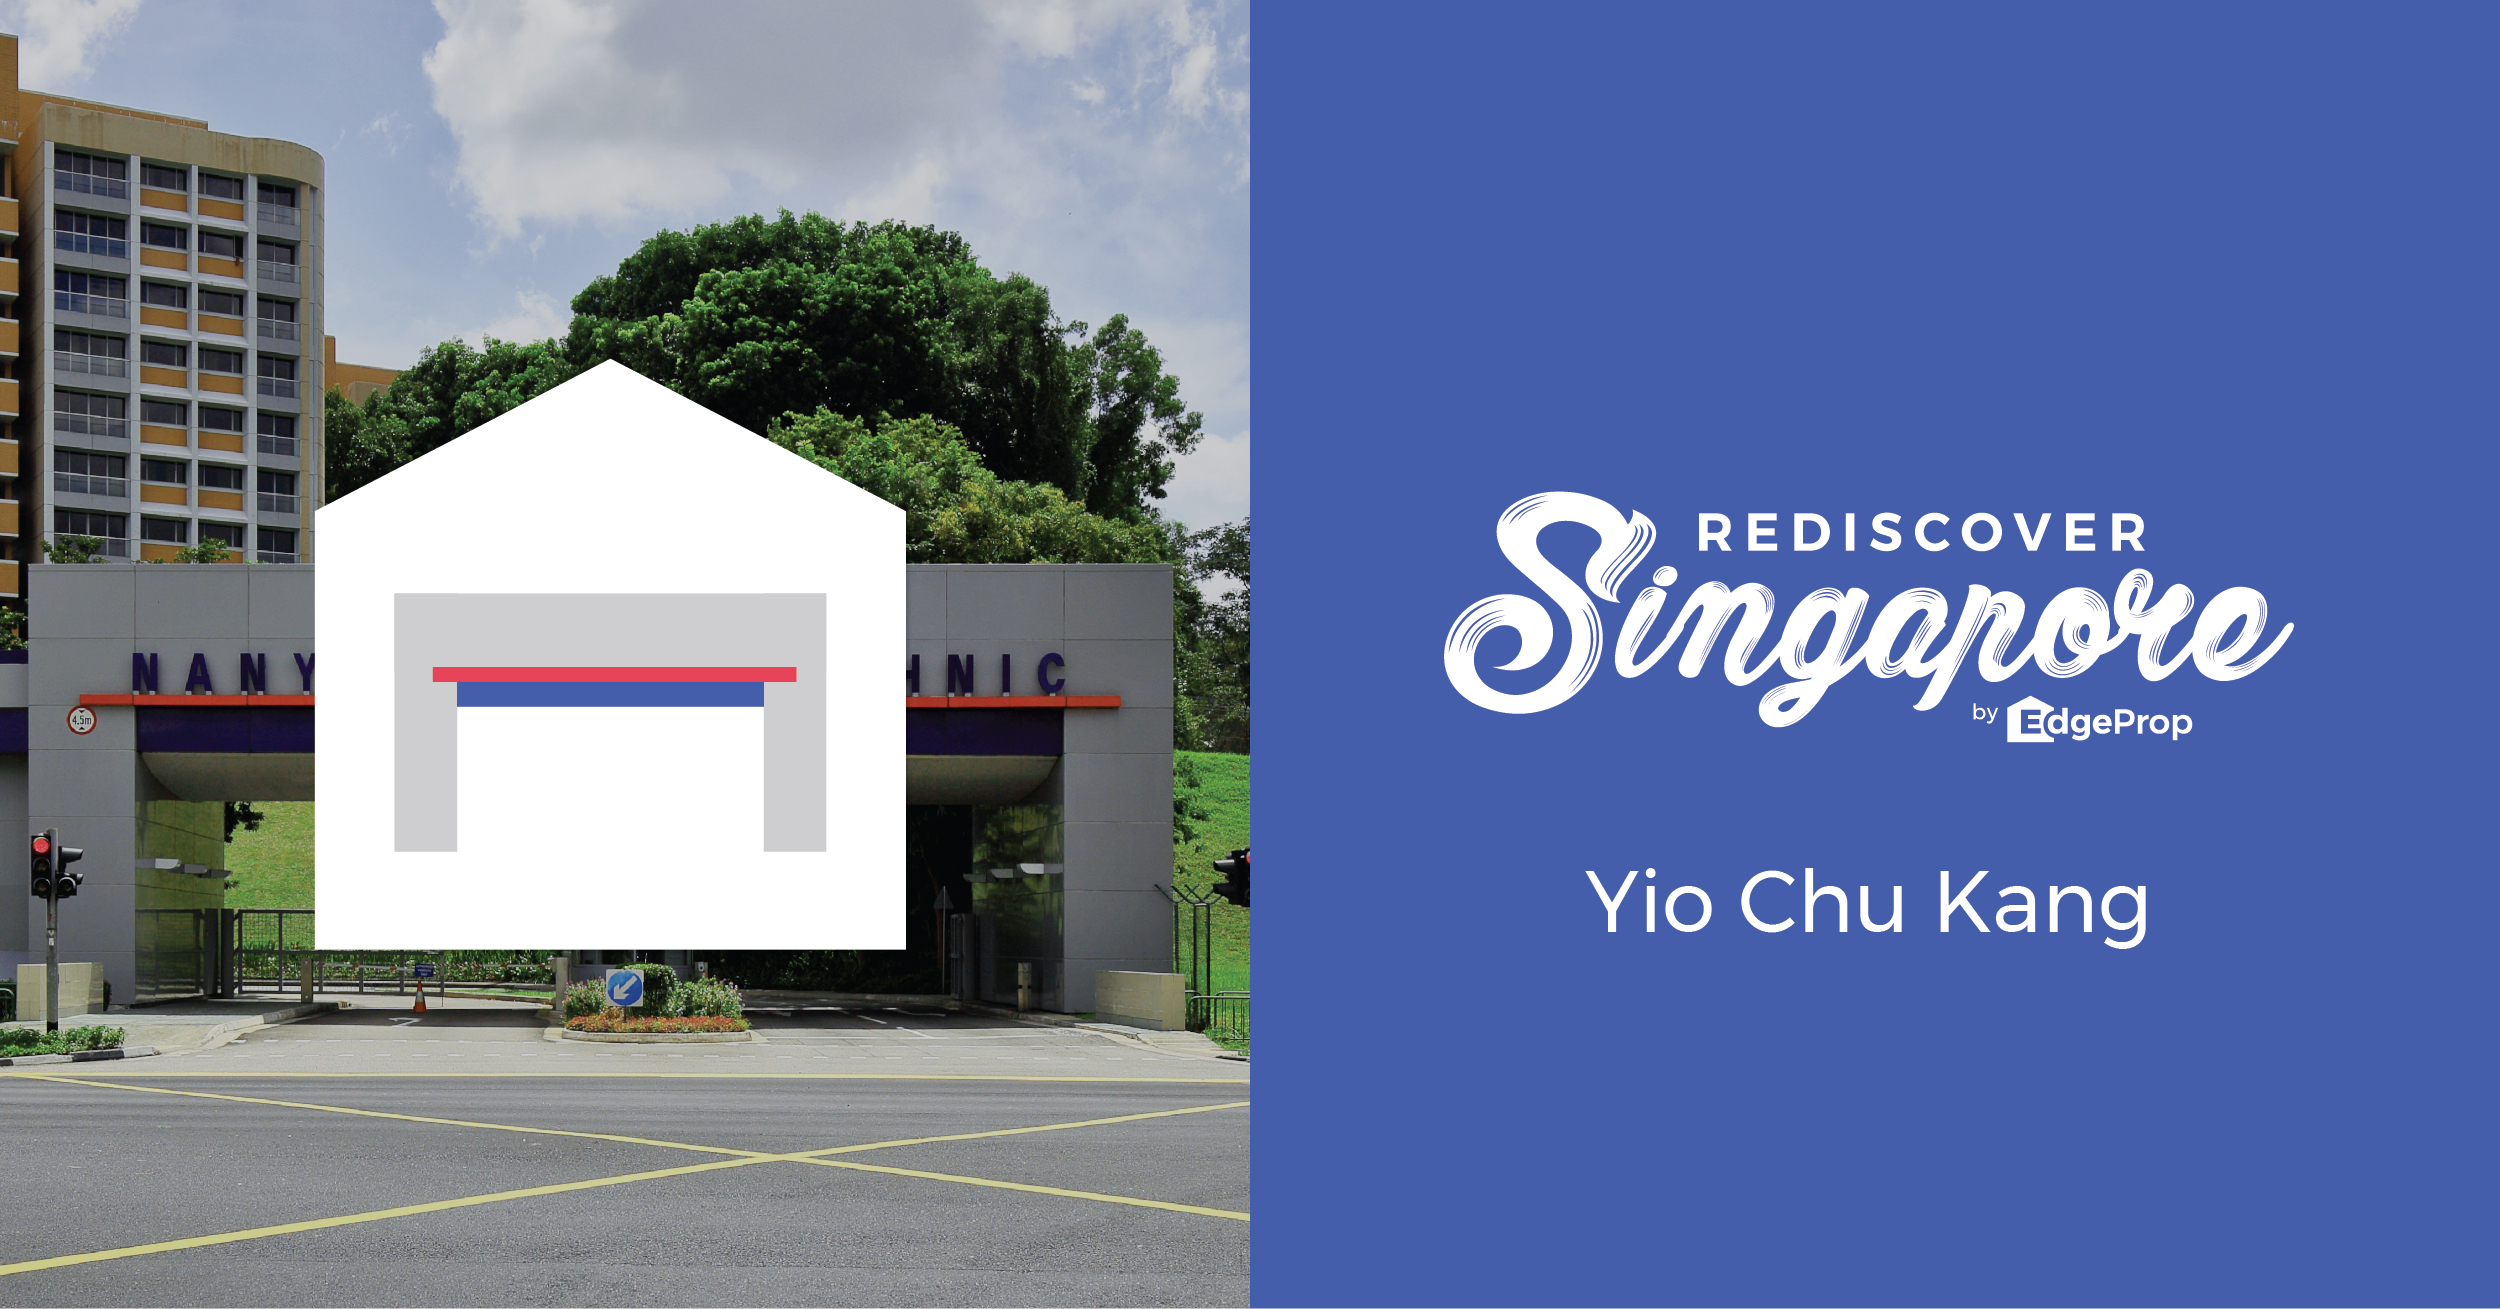 Yio Chu Kang: a mix of exclusive and down-to-earth housing